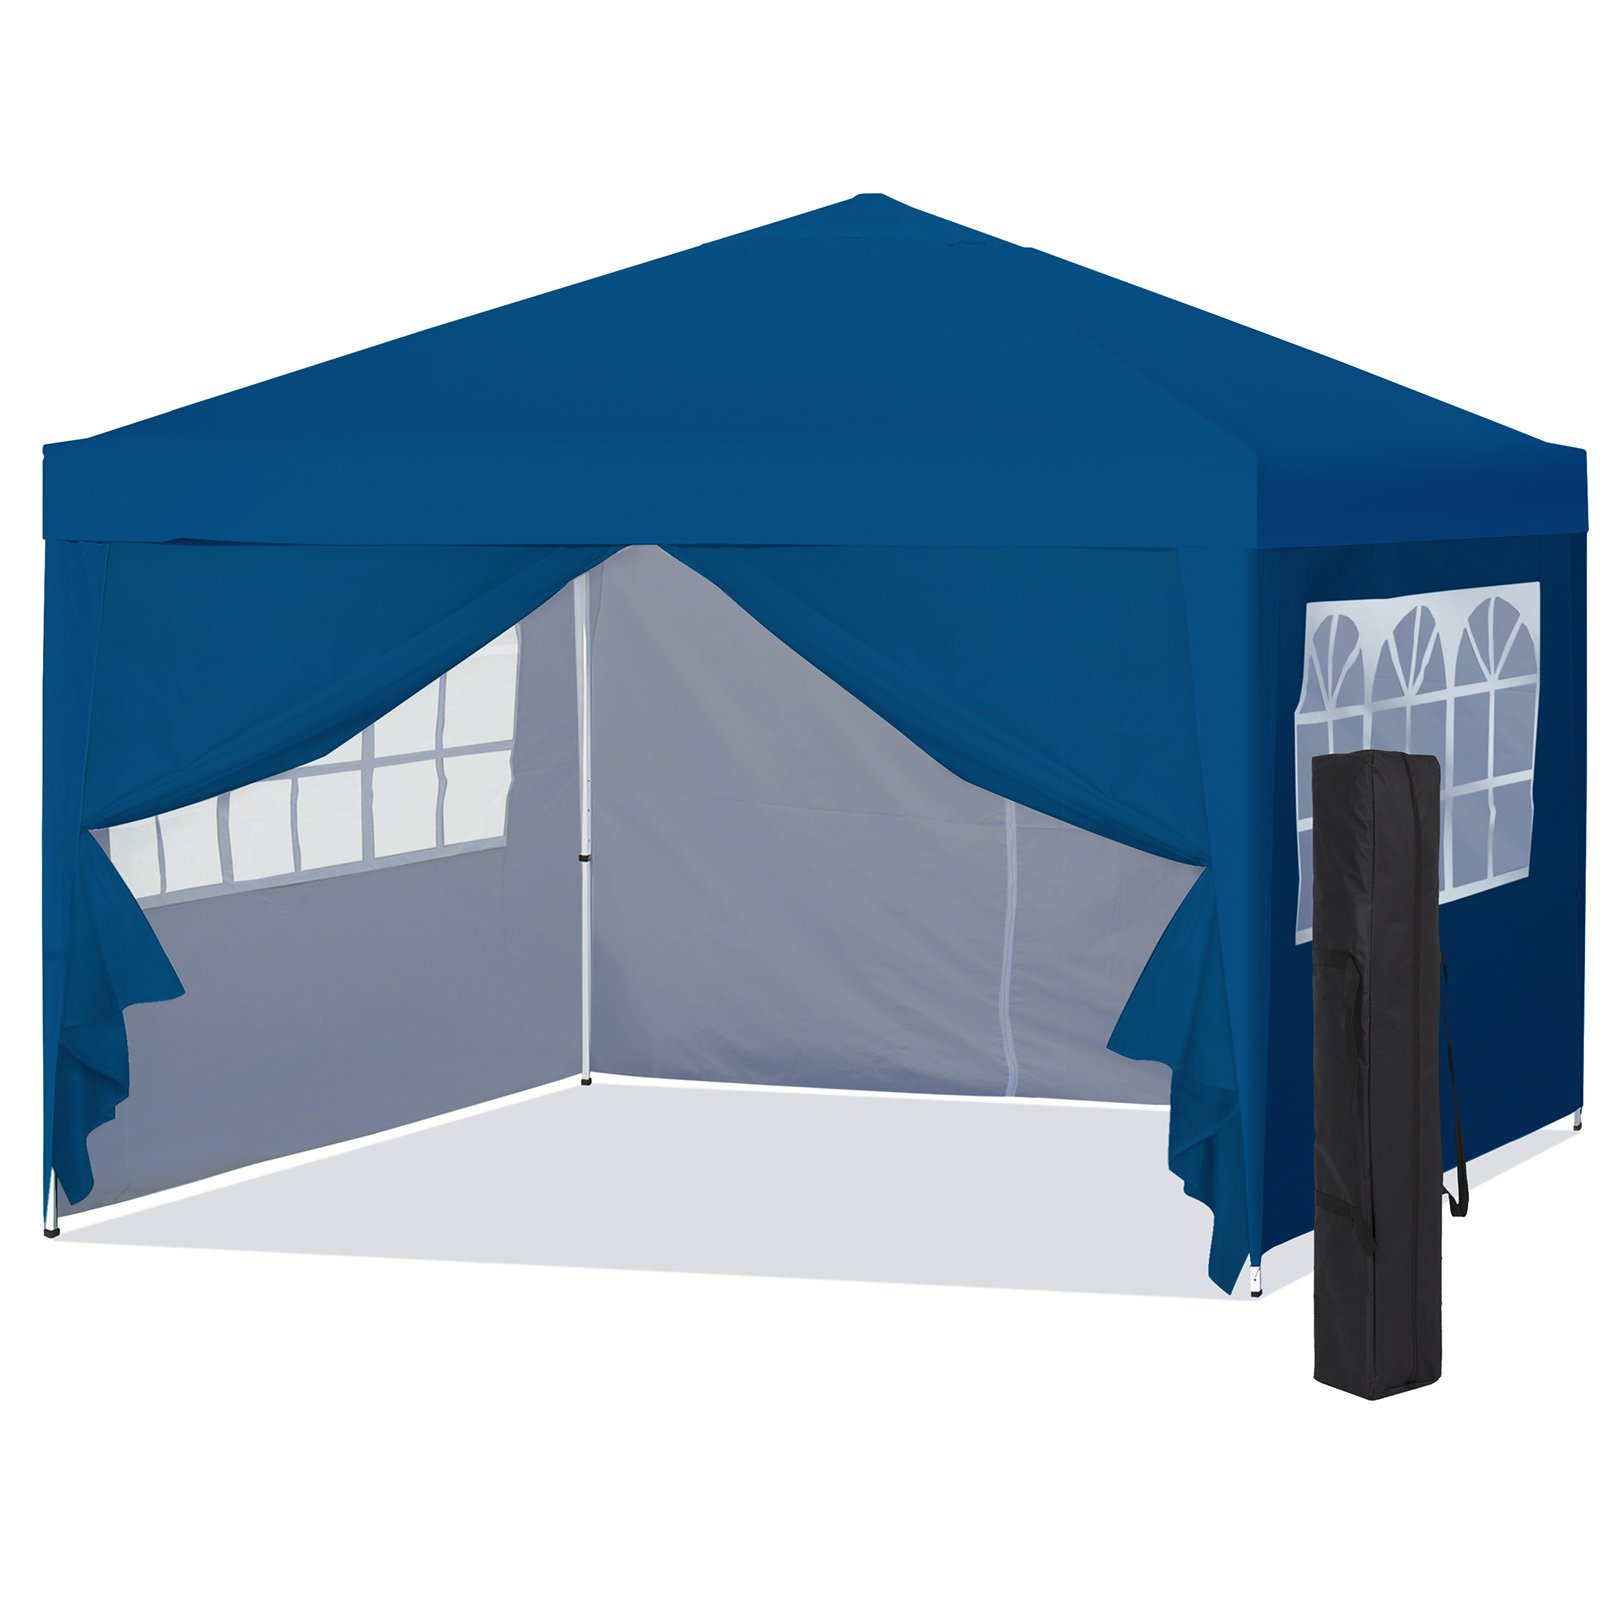 Best Choice Products 10x10ft Portable Lightweight Pop up Canopy Tent w/Side Walls Carrying Bag - Blue/Silver by Best Choice Products (Image #1)